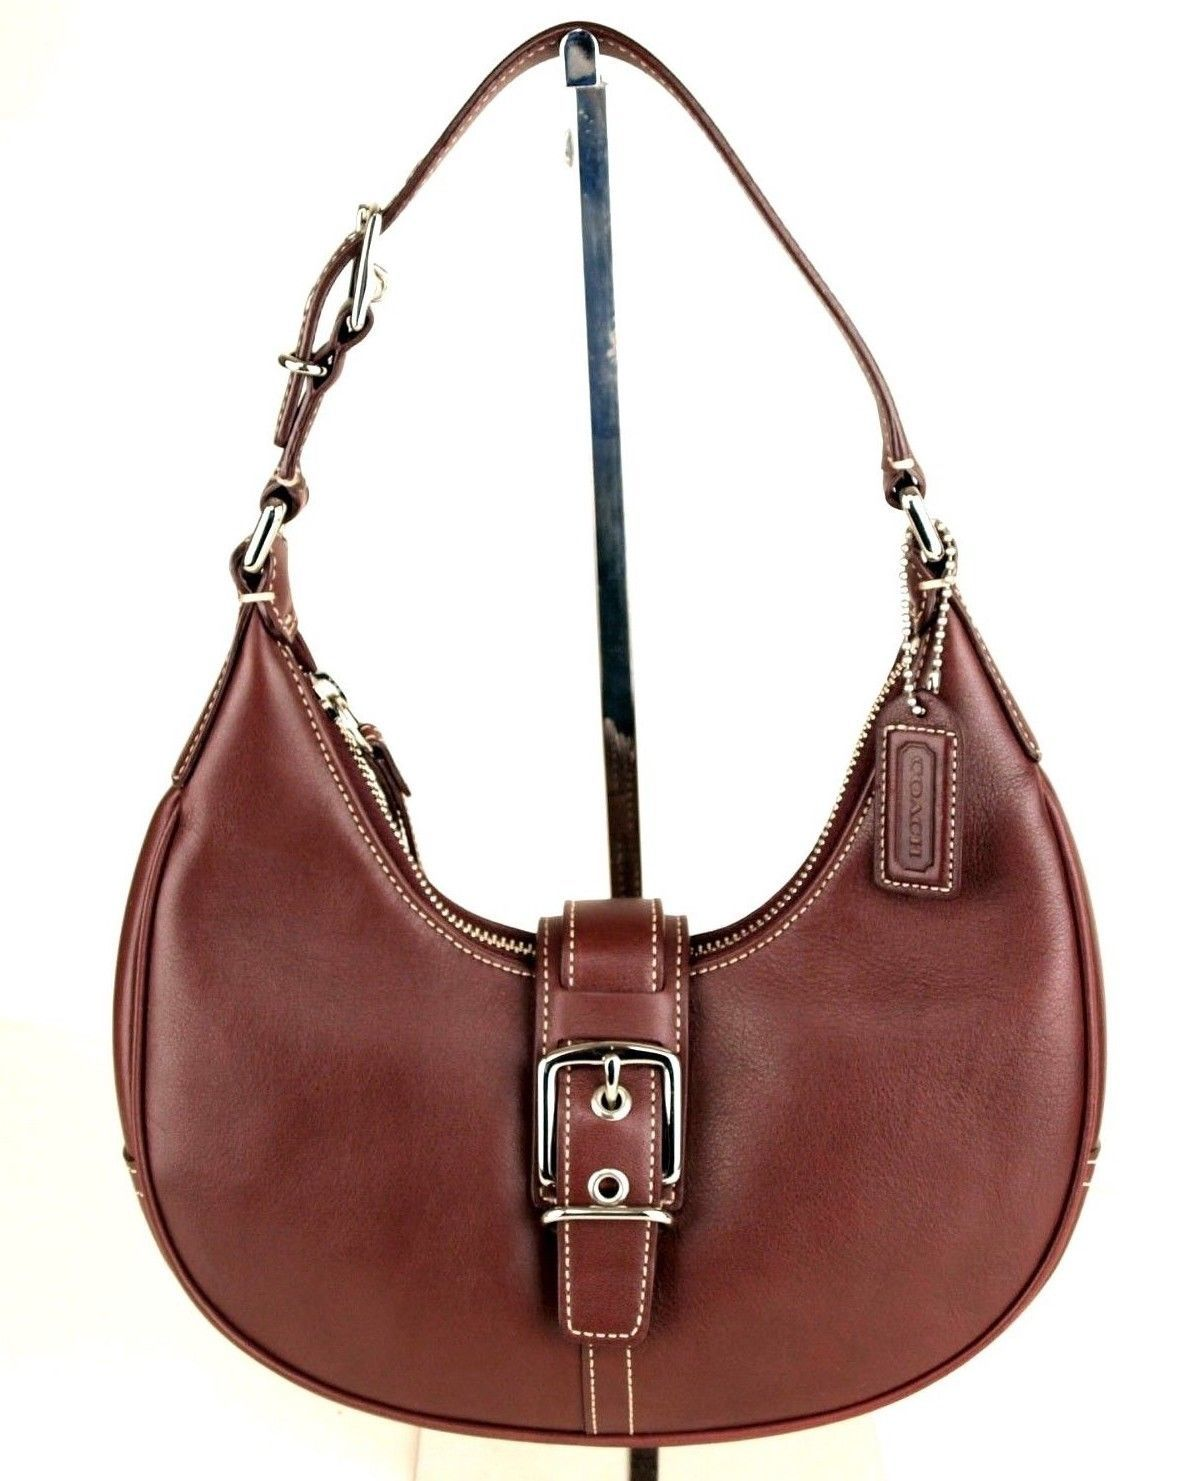 Authentic COACH Burgundy Leather Hobo Shoulder Bag Handbag Purse Good Condition